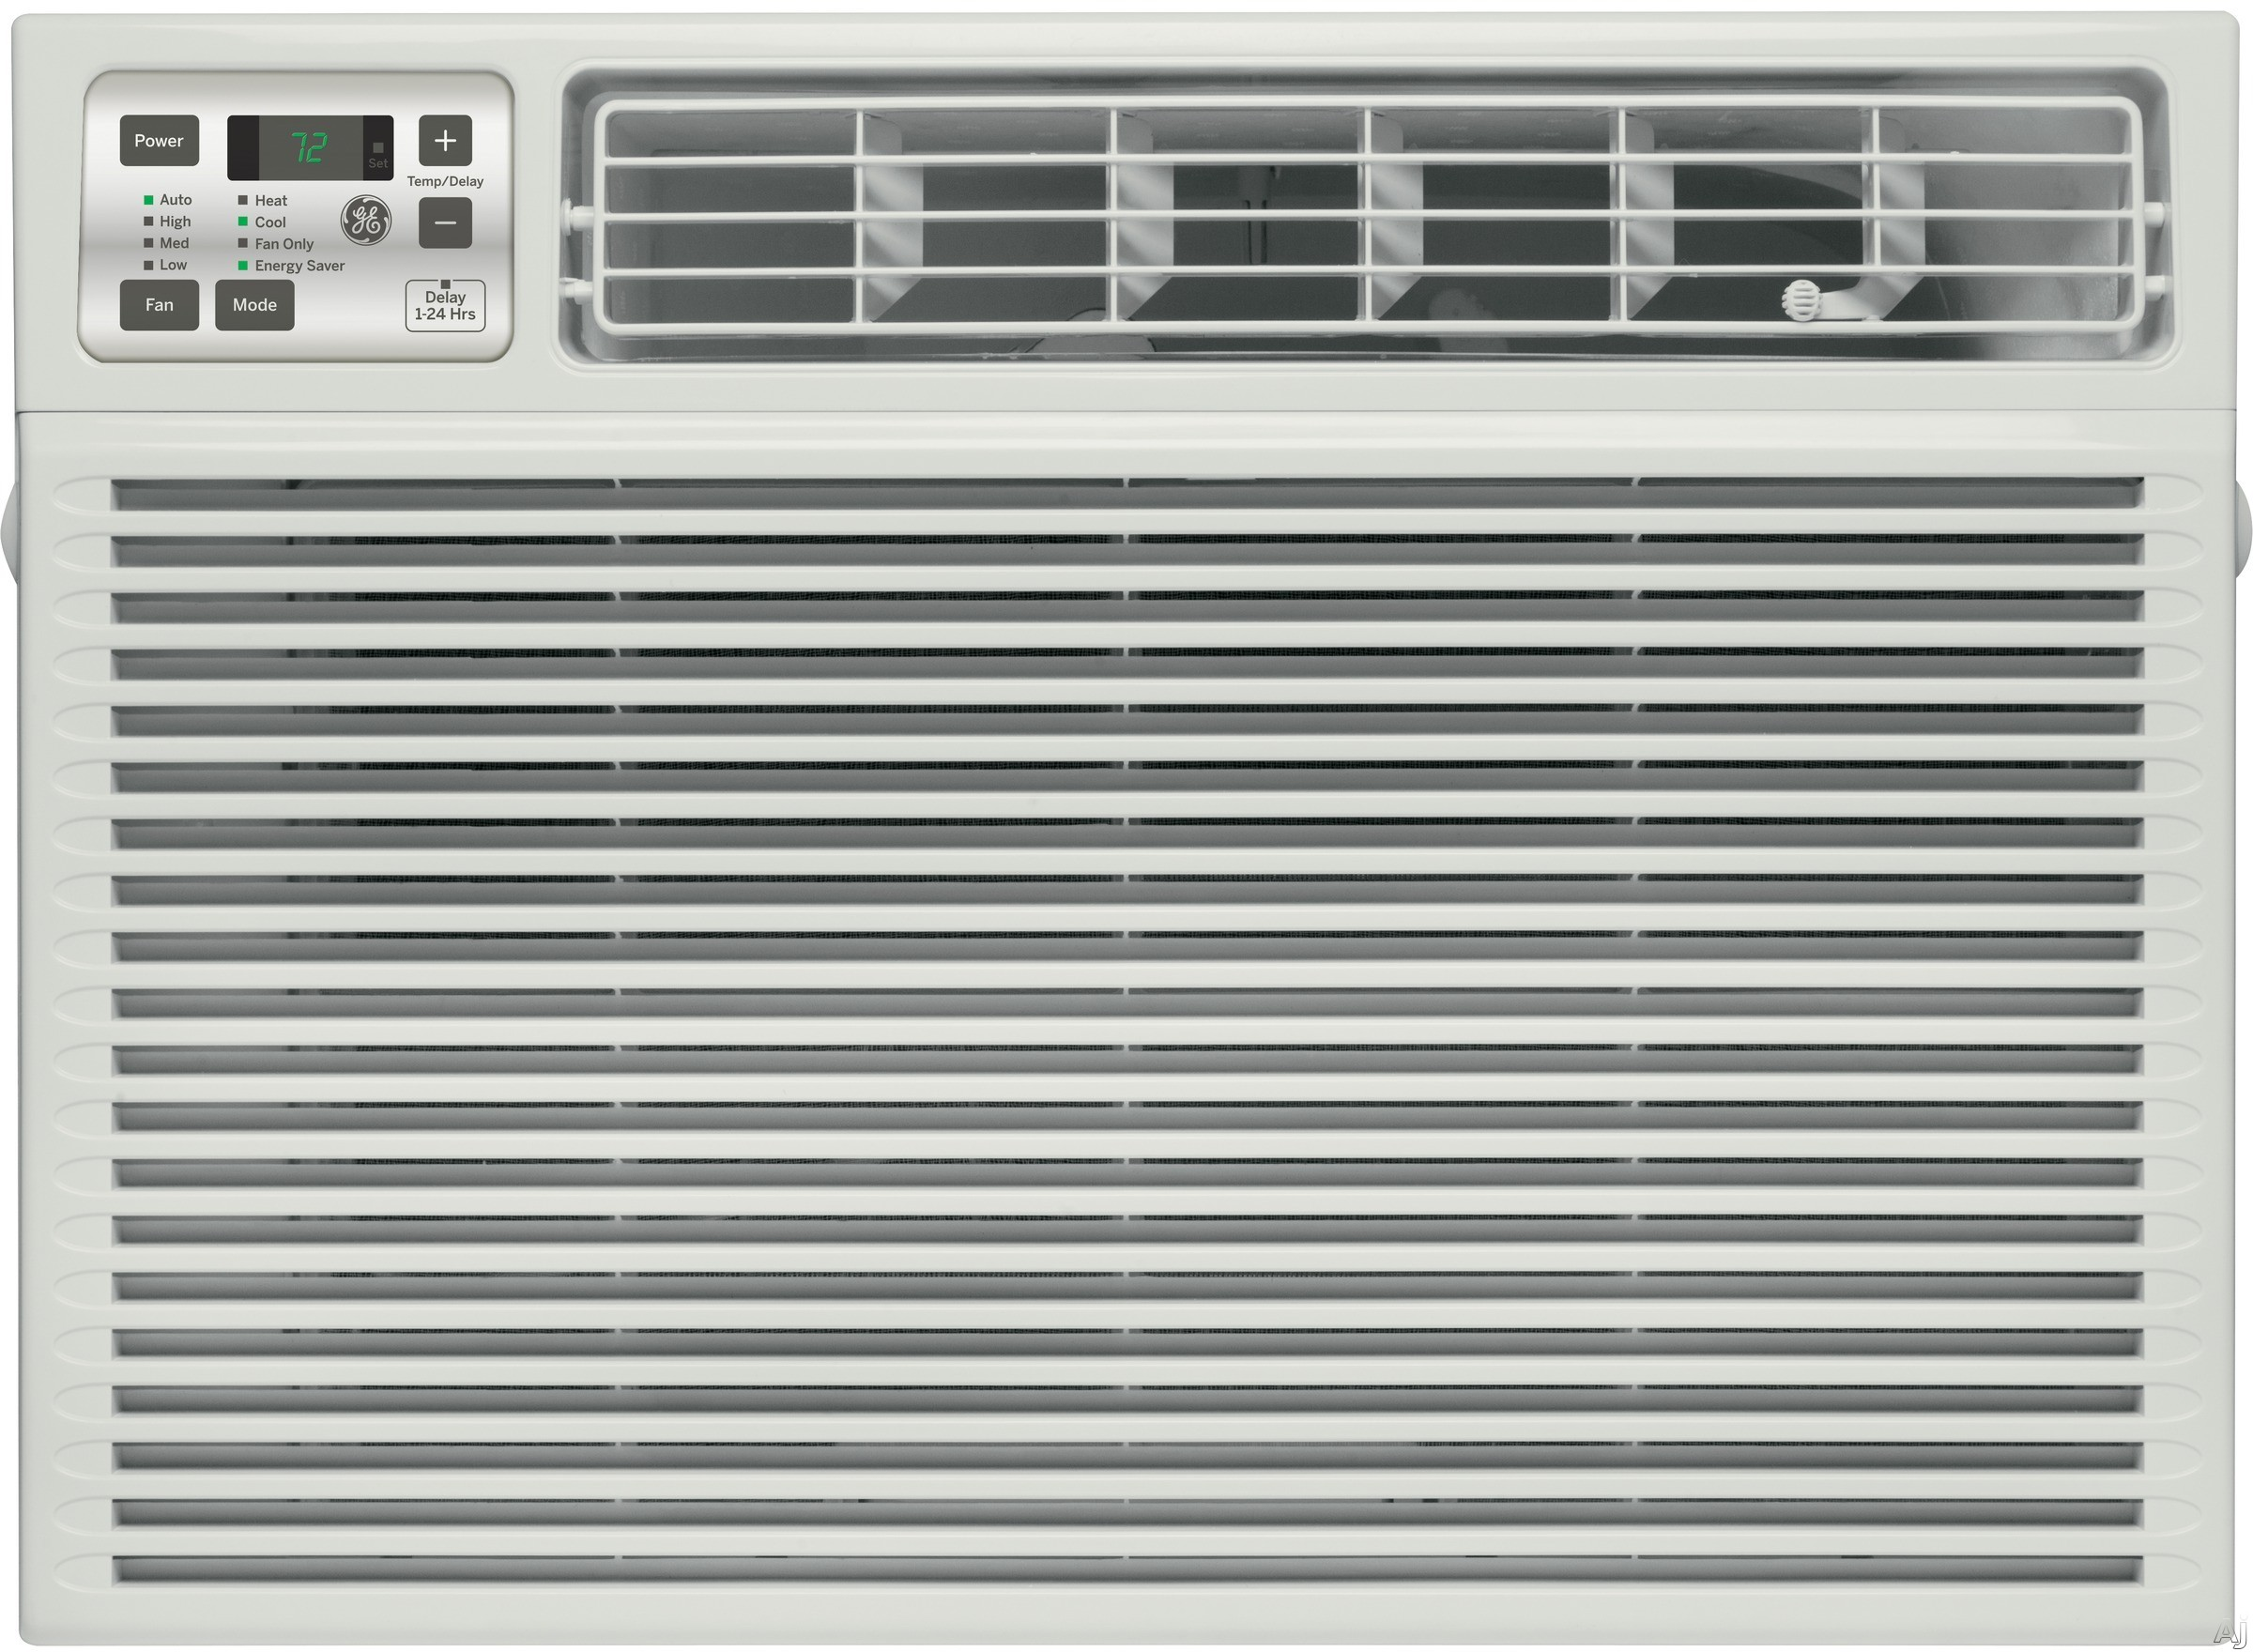 GE AEE18DT 17,600 BTU Room Air Conditioner with 11,000 Heating BTU, 410 CFM, 10.7 CEER, 5.1 Pts/Hr Dehumidification Capacity, Electronic Digital Thermostat with Remote and Energy Saver Feature AEE18DT